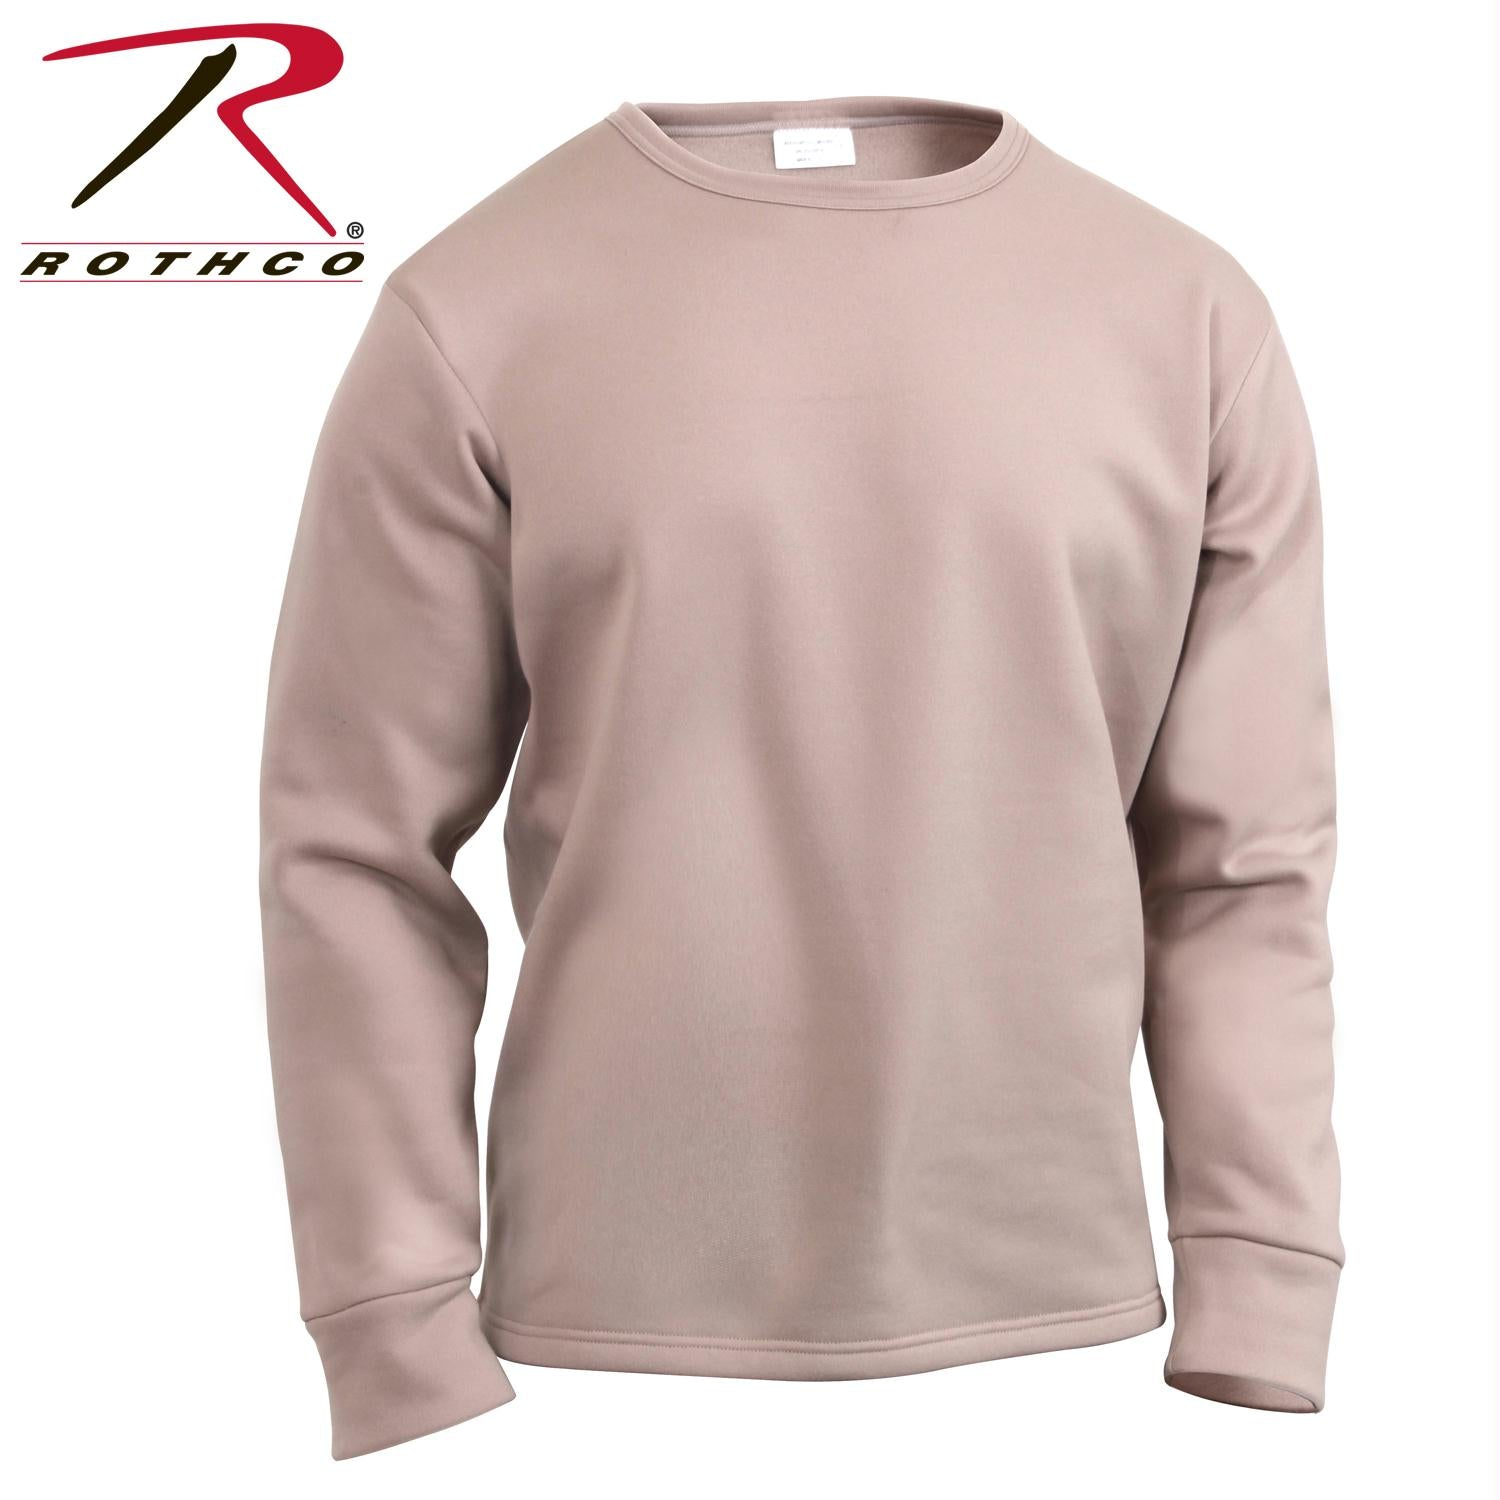 Rothco ECWCS Poly Crew Neck Top - Desert Sand / XL